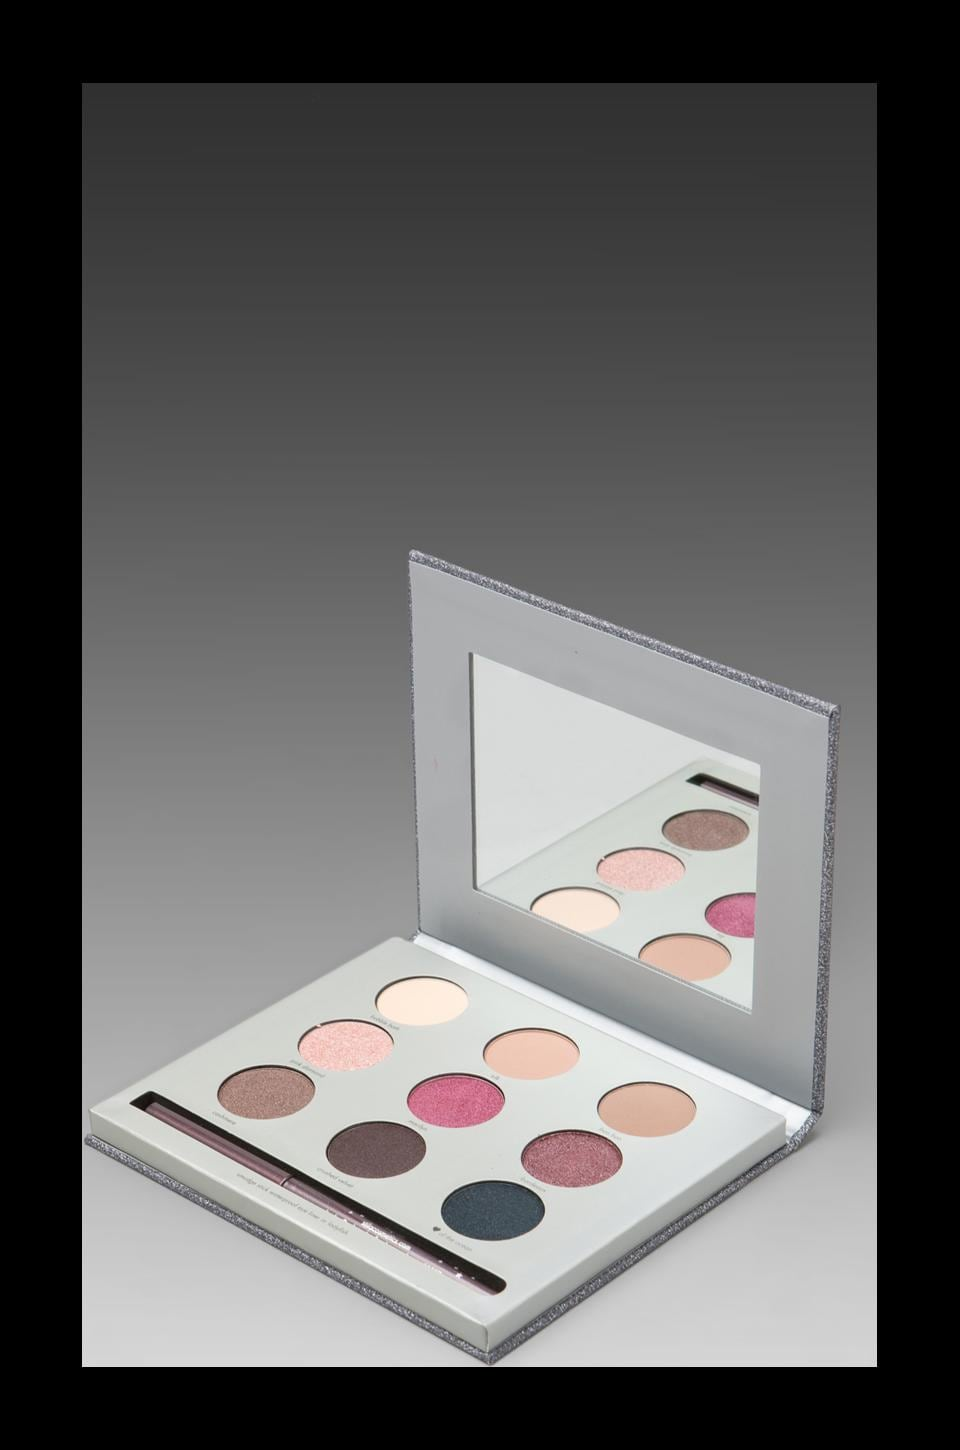 Stila Luxe Eye Shadow Palette in Multi